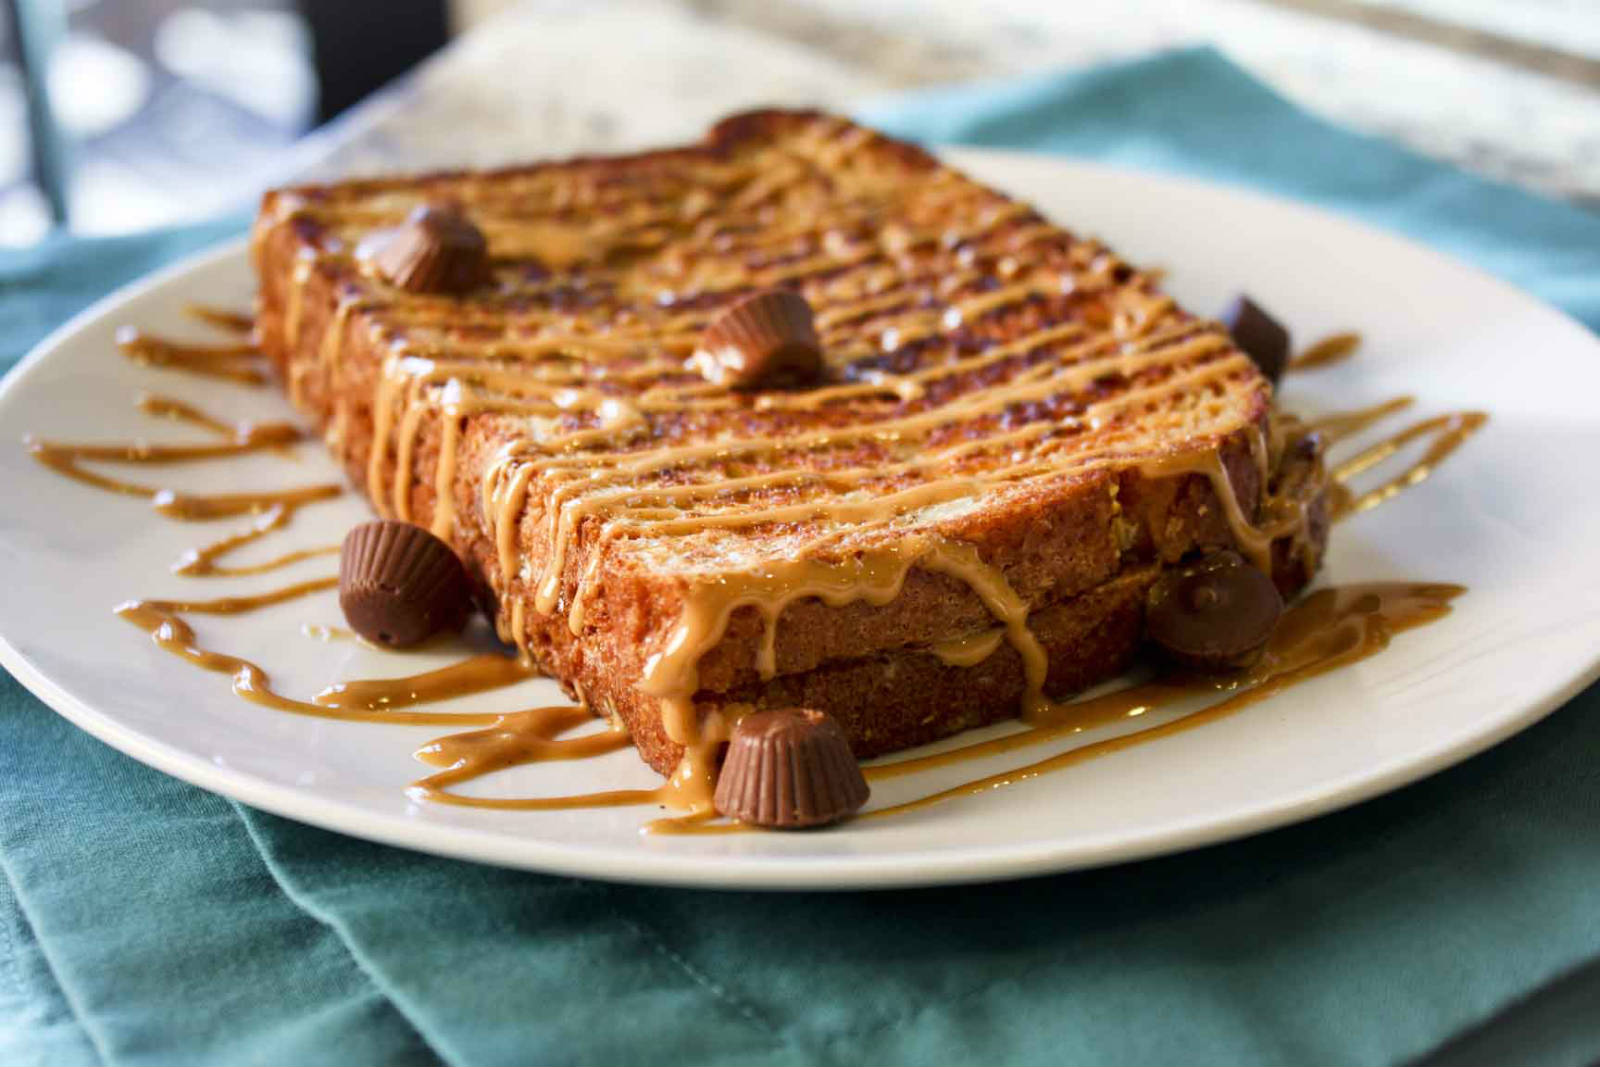 Breakfast Ideas for Weight Loss - Whole Grain Bread Toast with Peanut Butter